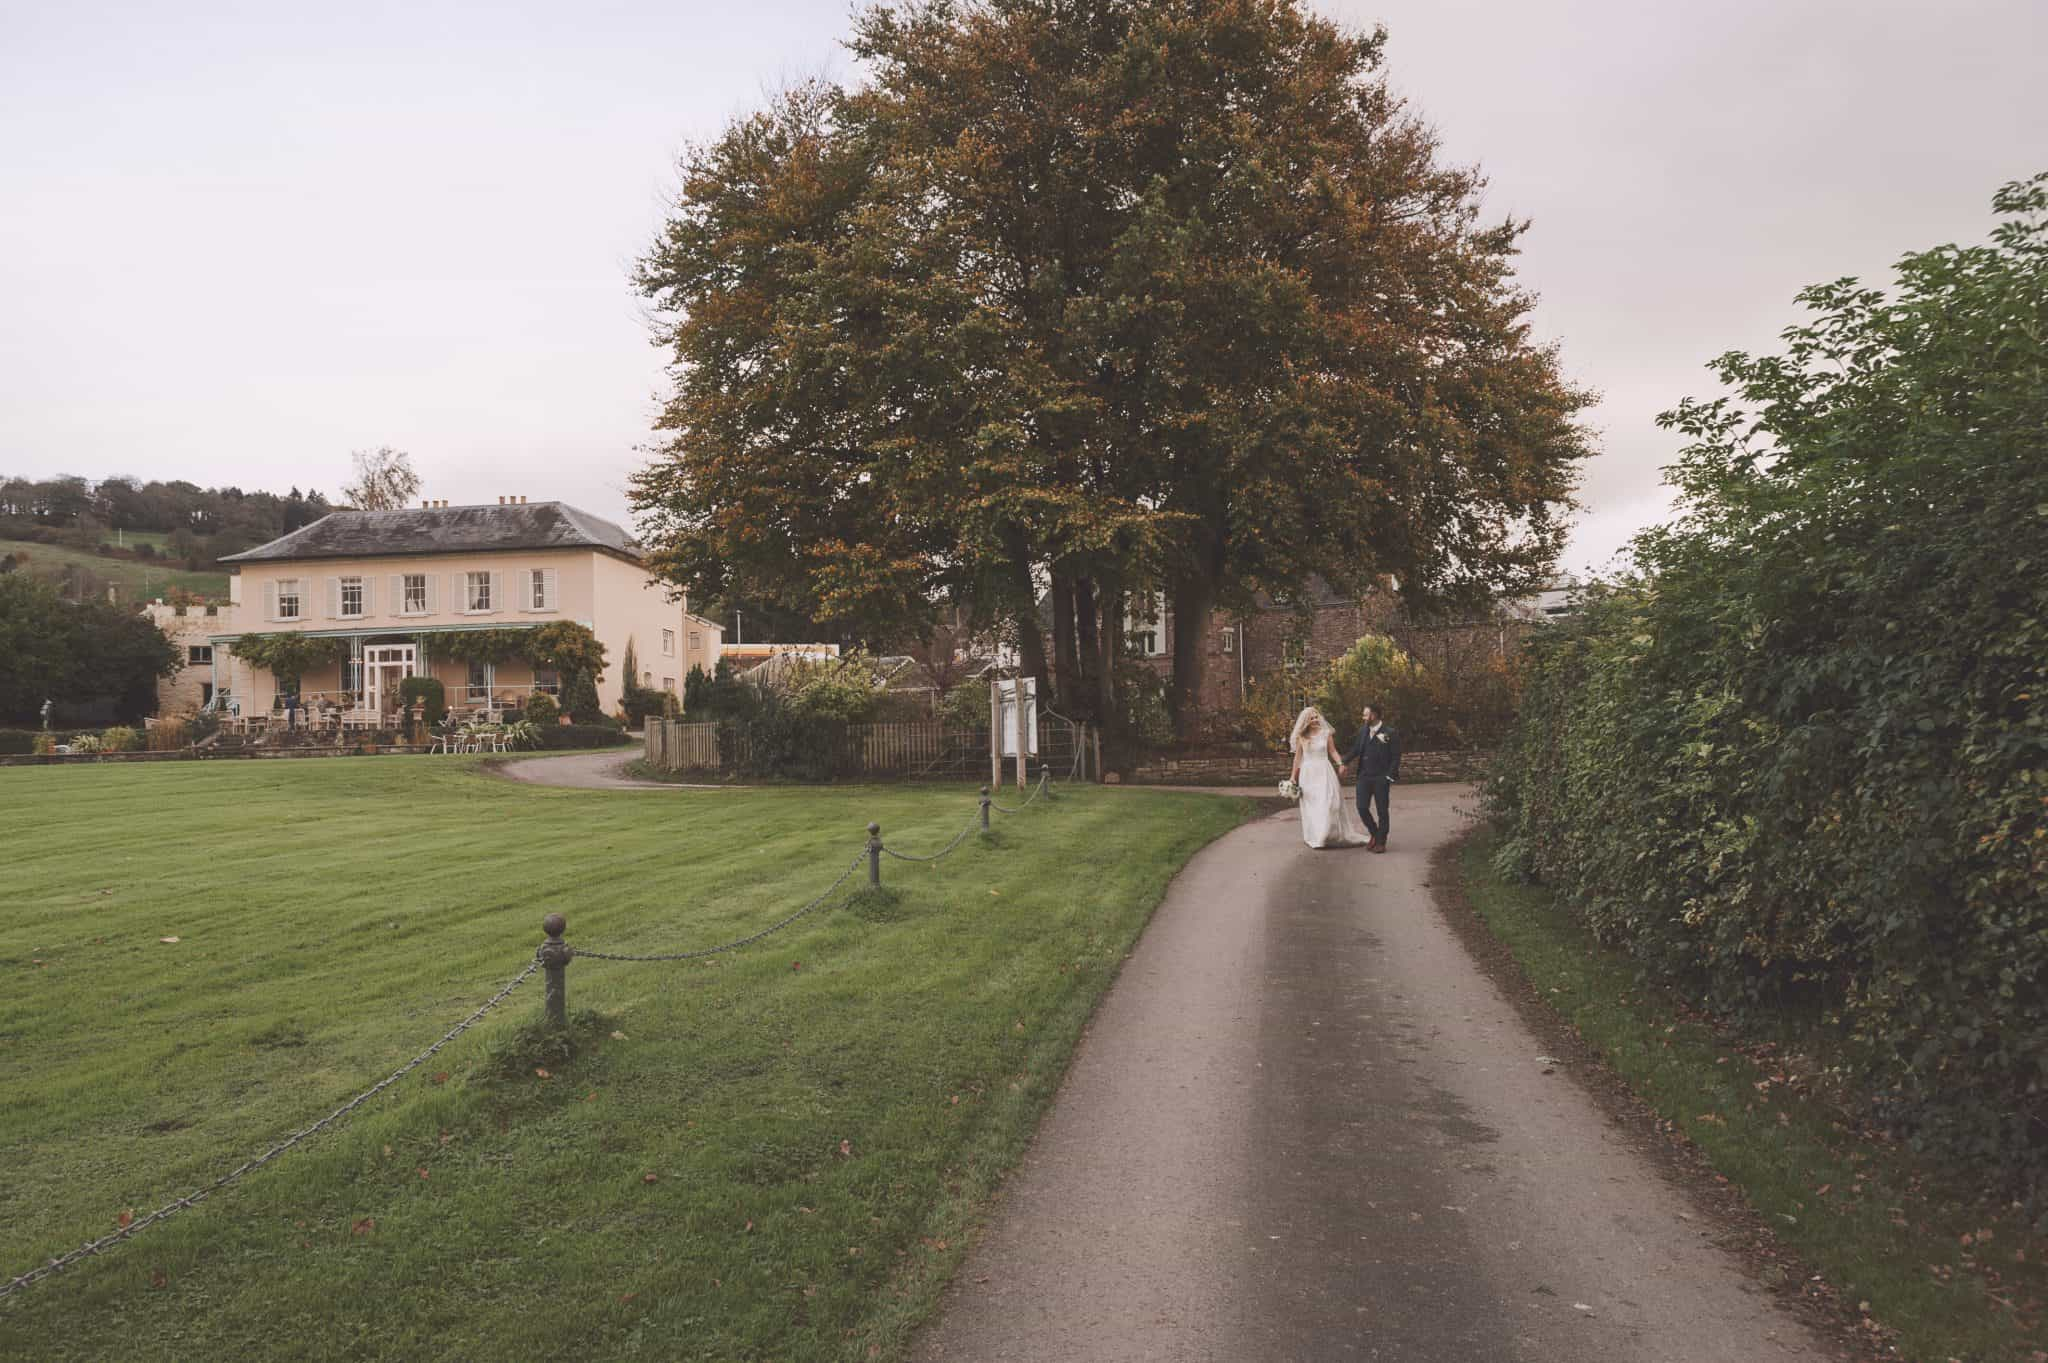 porthmawr country house wedding ~ Bride & Groom Walking down a path in front of a country house